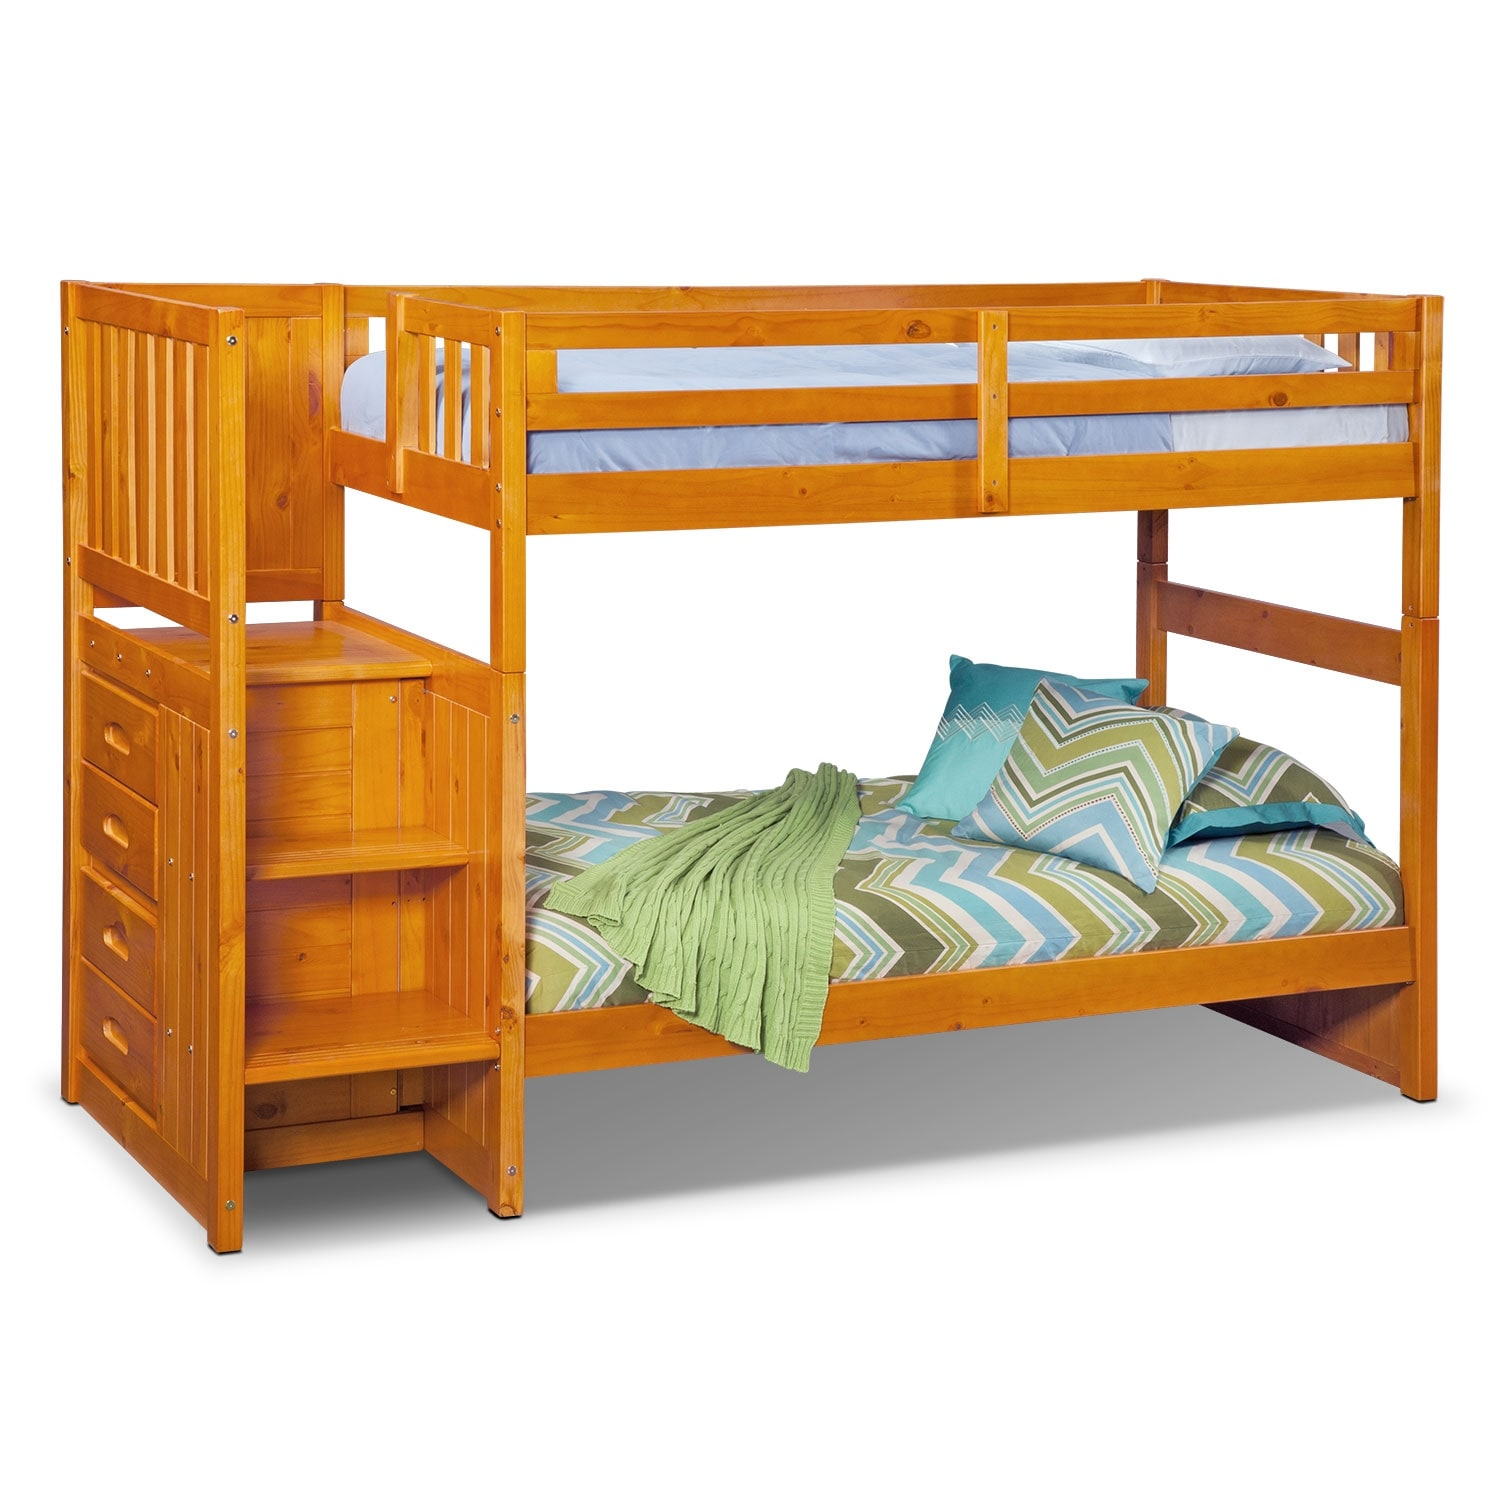 Kids Furniture - Ranger Pine Twin/Twin Bunk Bed w/ Stairs and 4-Drawer Storage